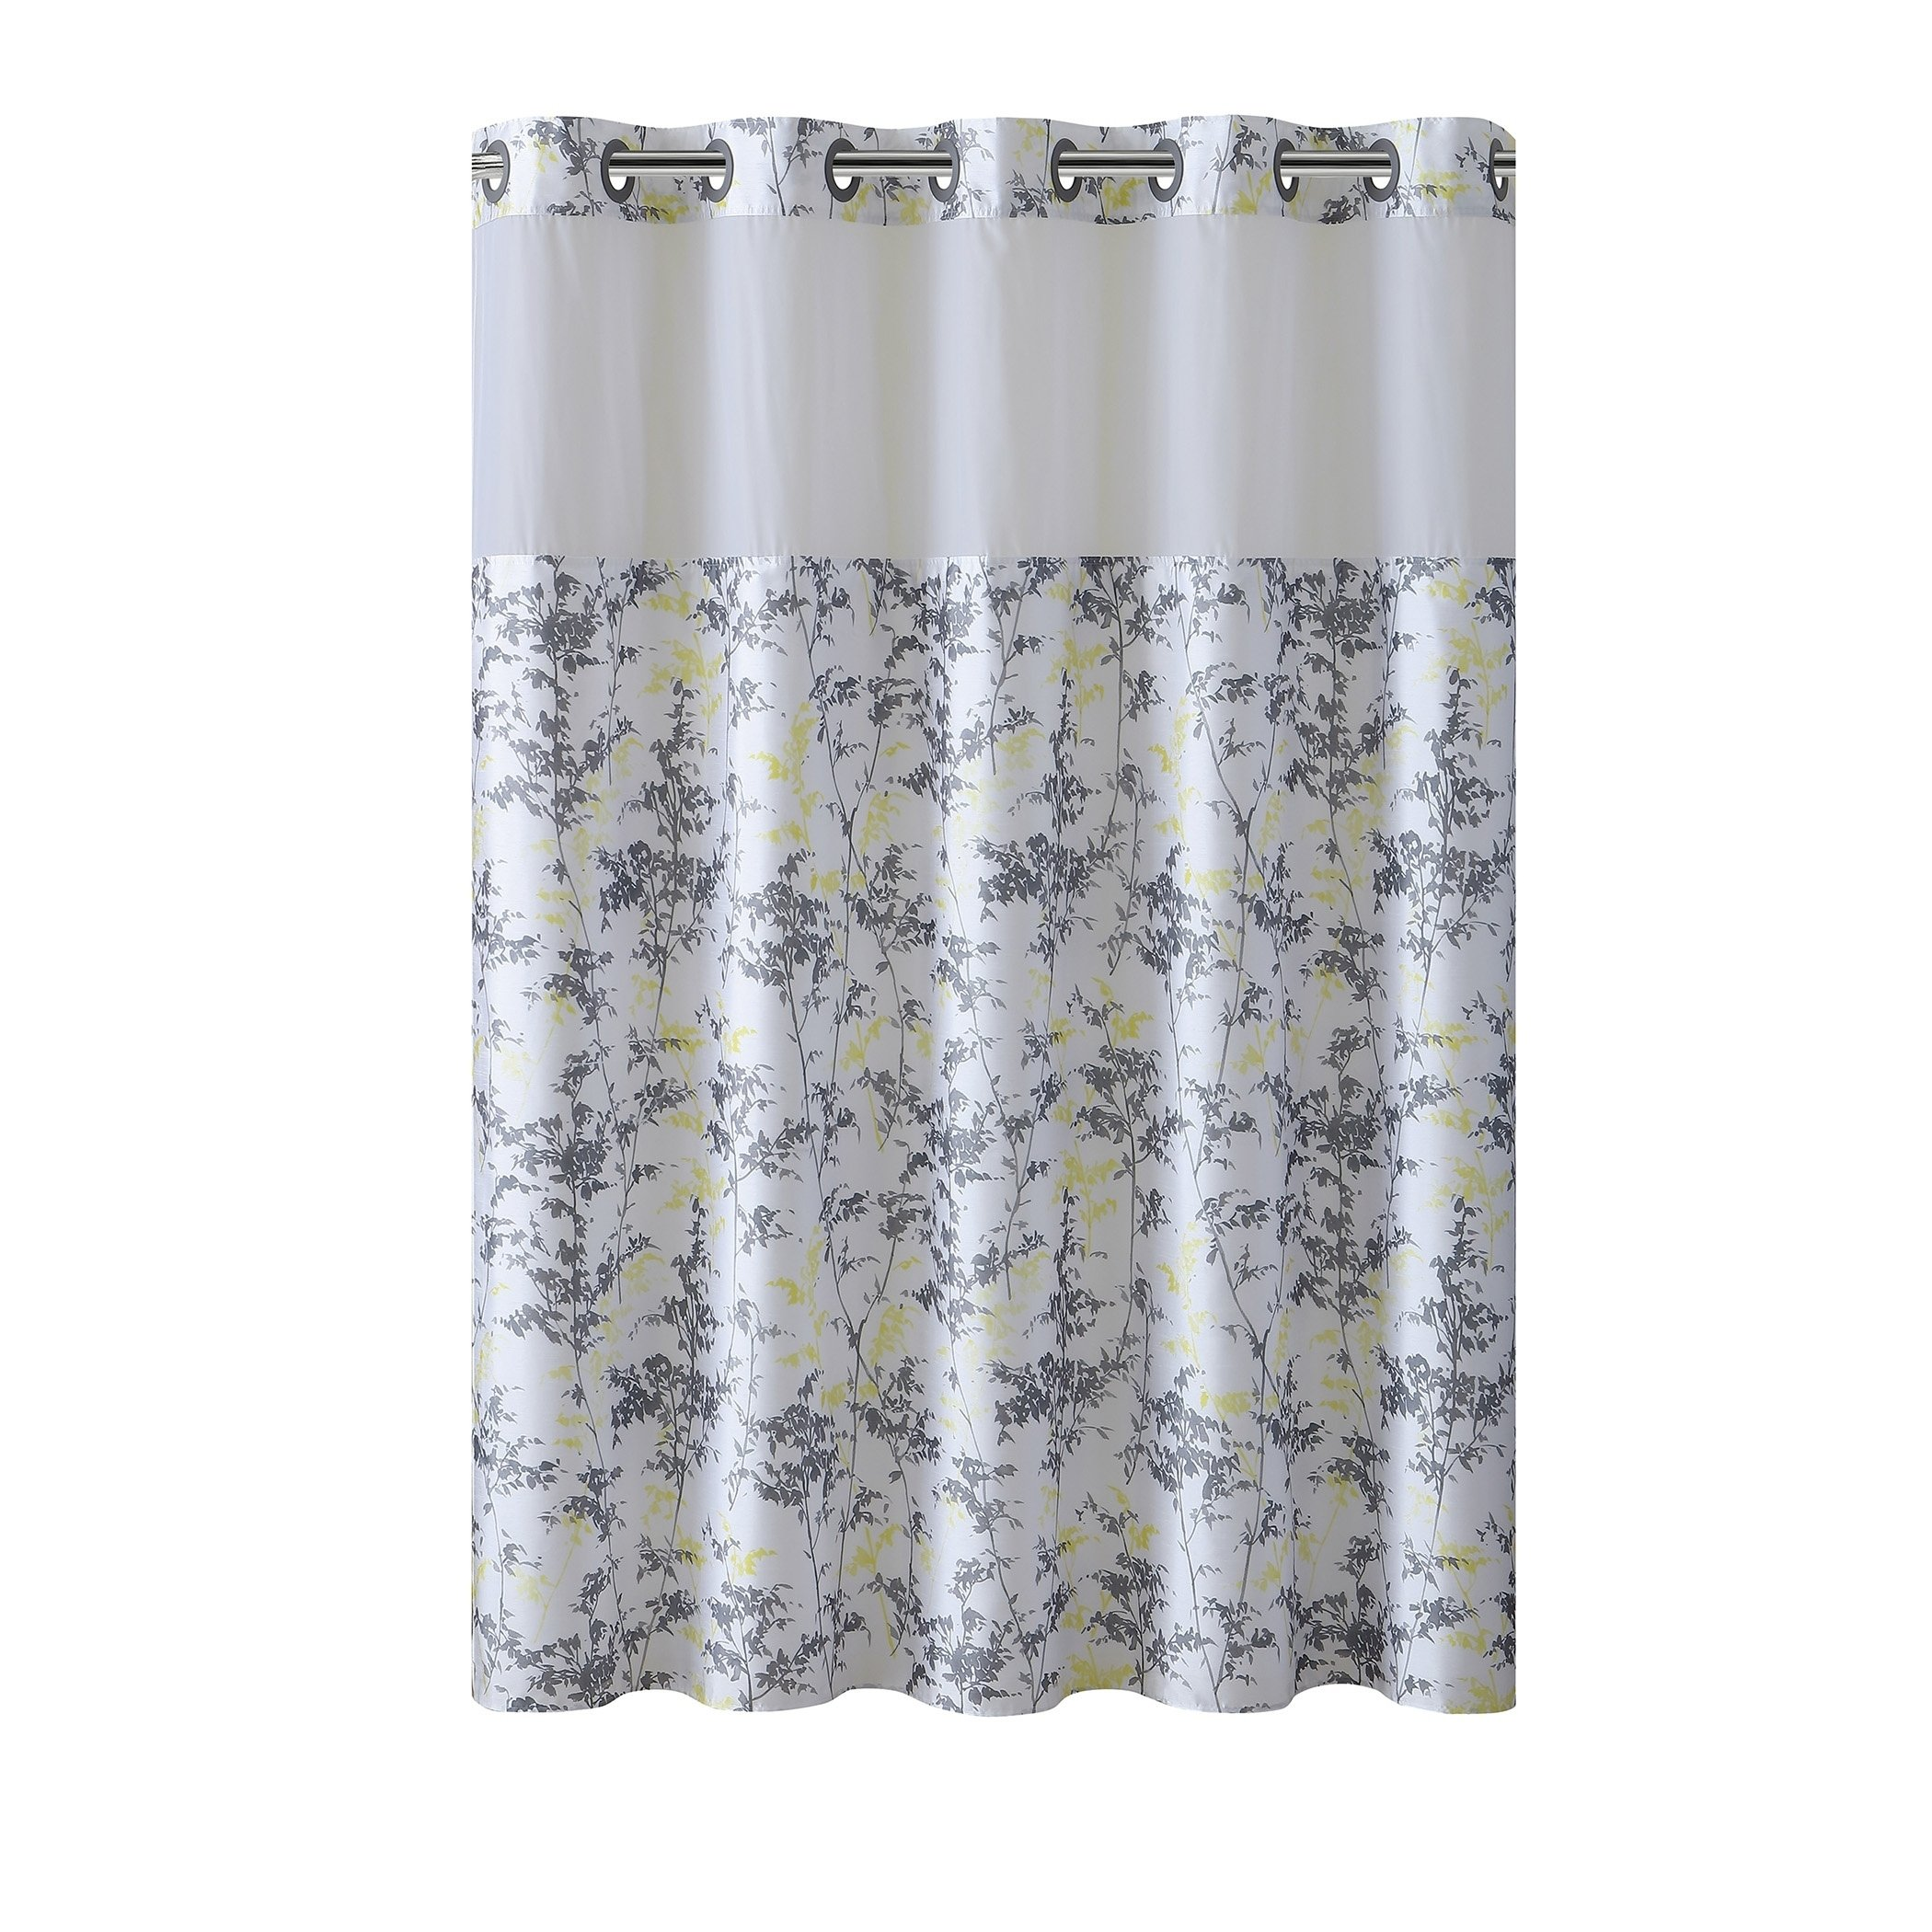 Hookless Shower Curtain Floral Leaves Gray Yellow Grey